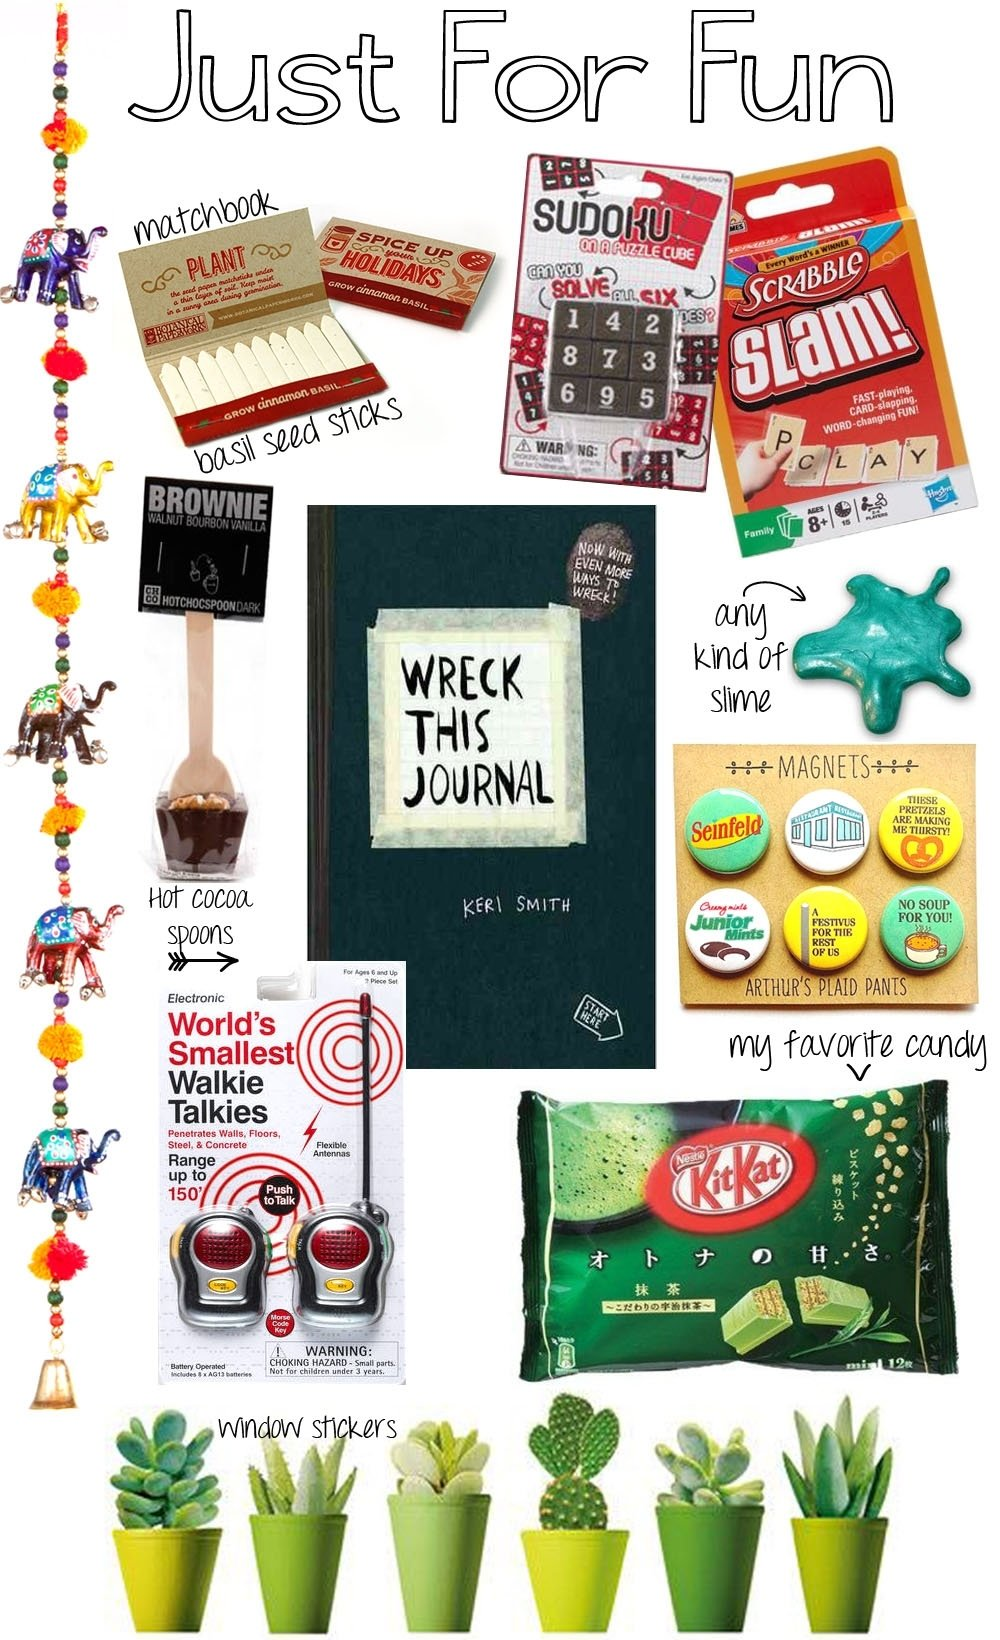 10 Ideal Stocking Stuffer Ideas For Boyfriend stocking stuffer making mondays 2020